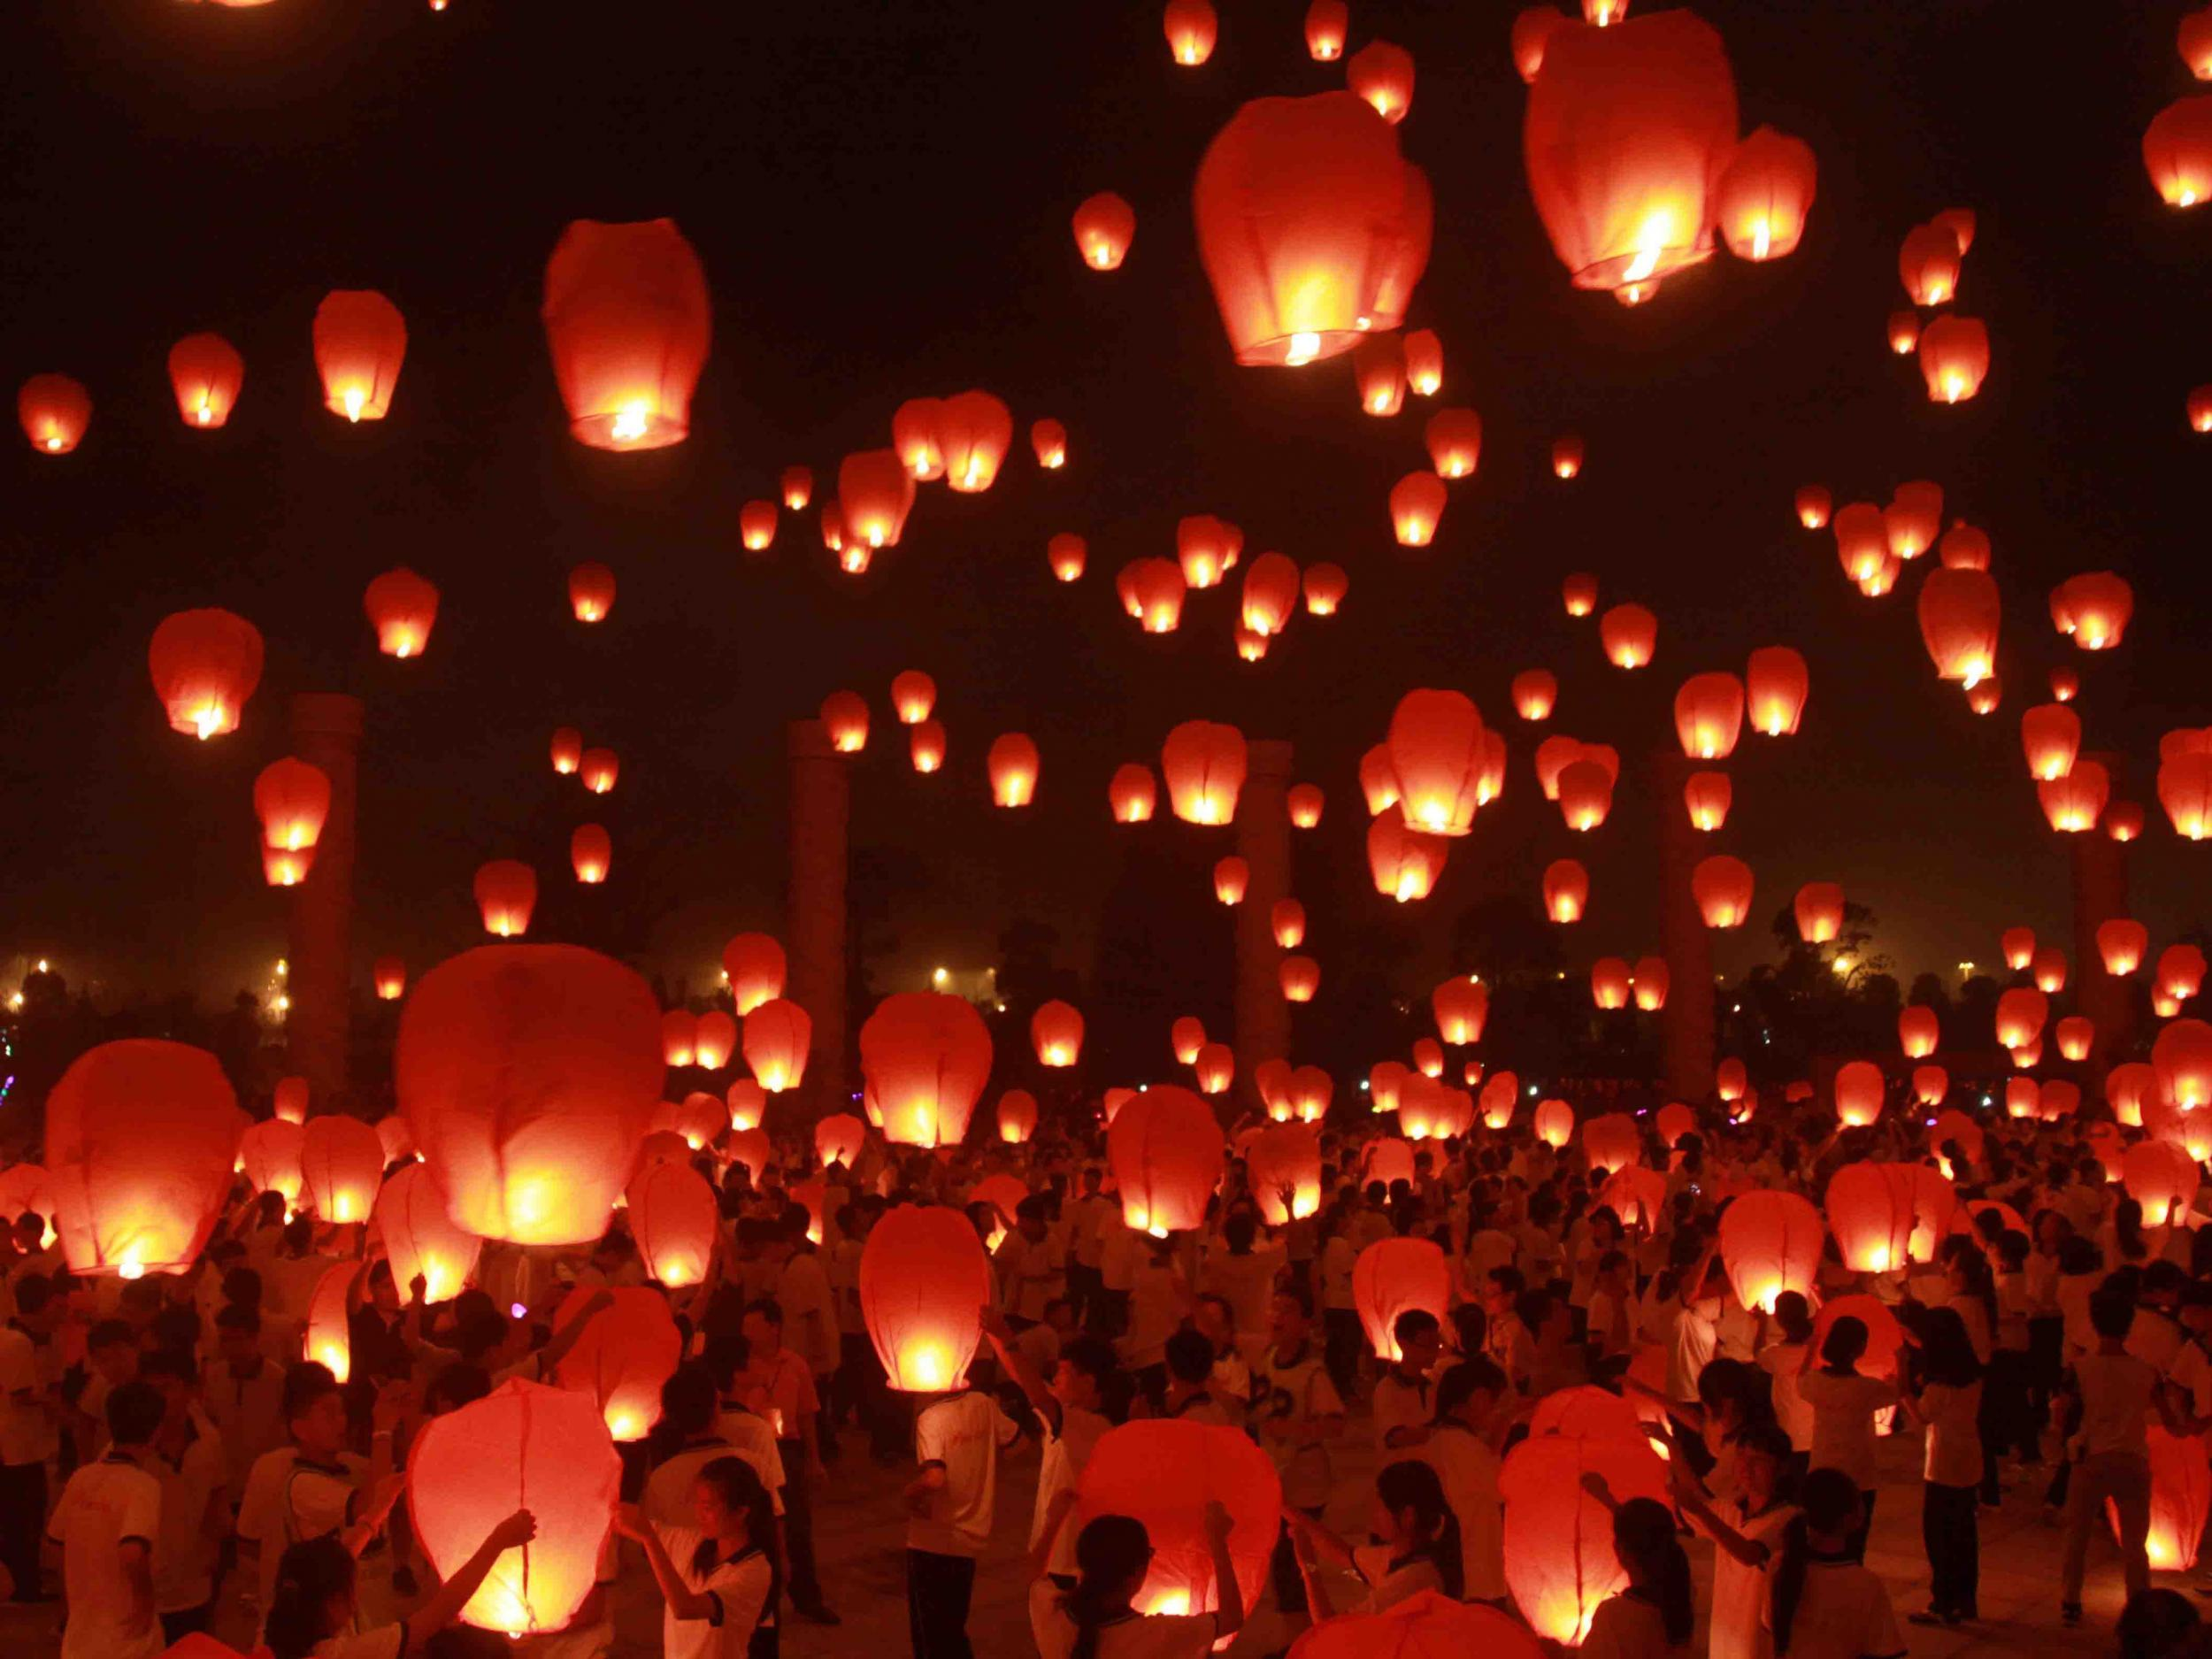 chinese moon festival - HD2500×1875